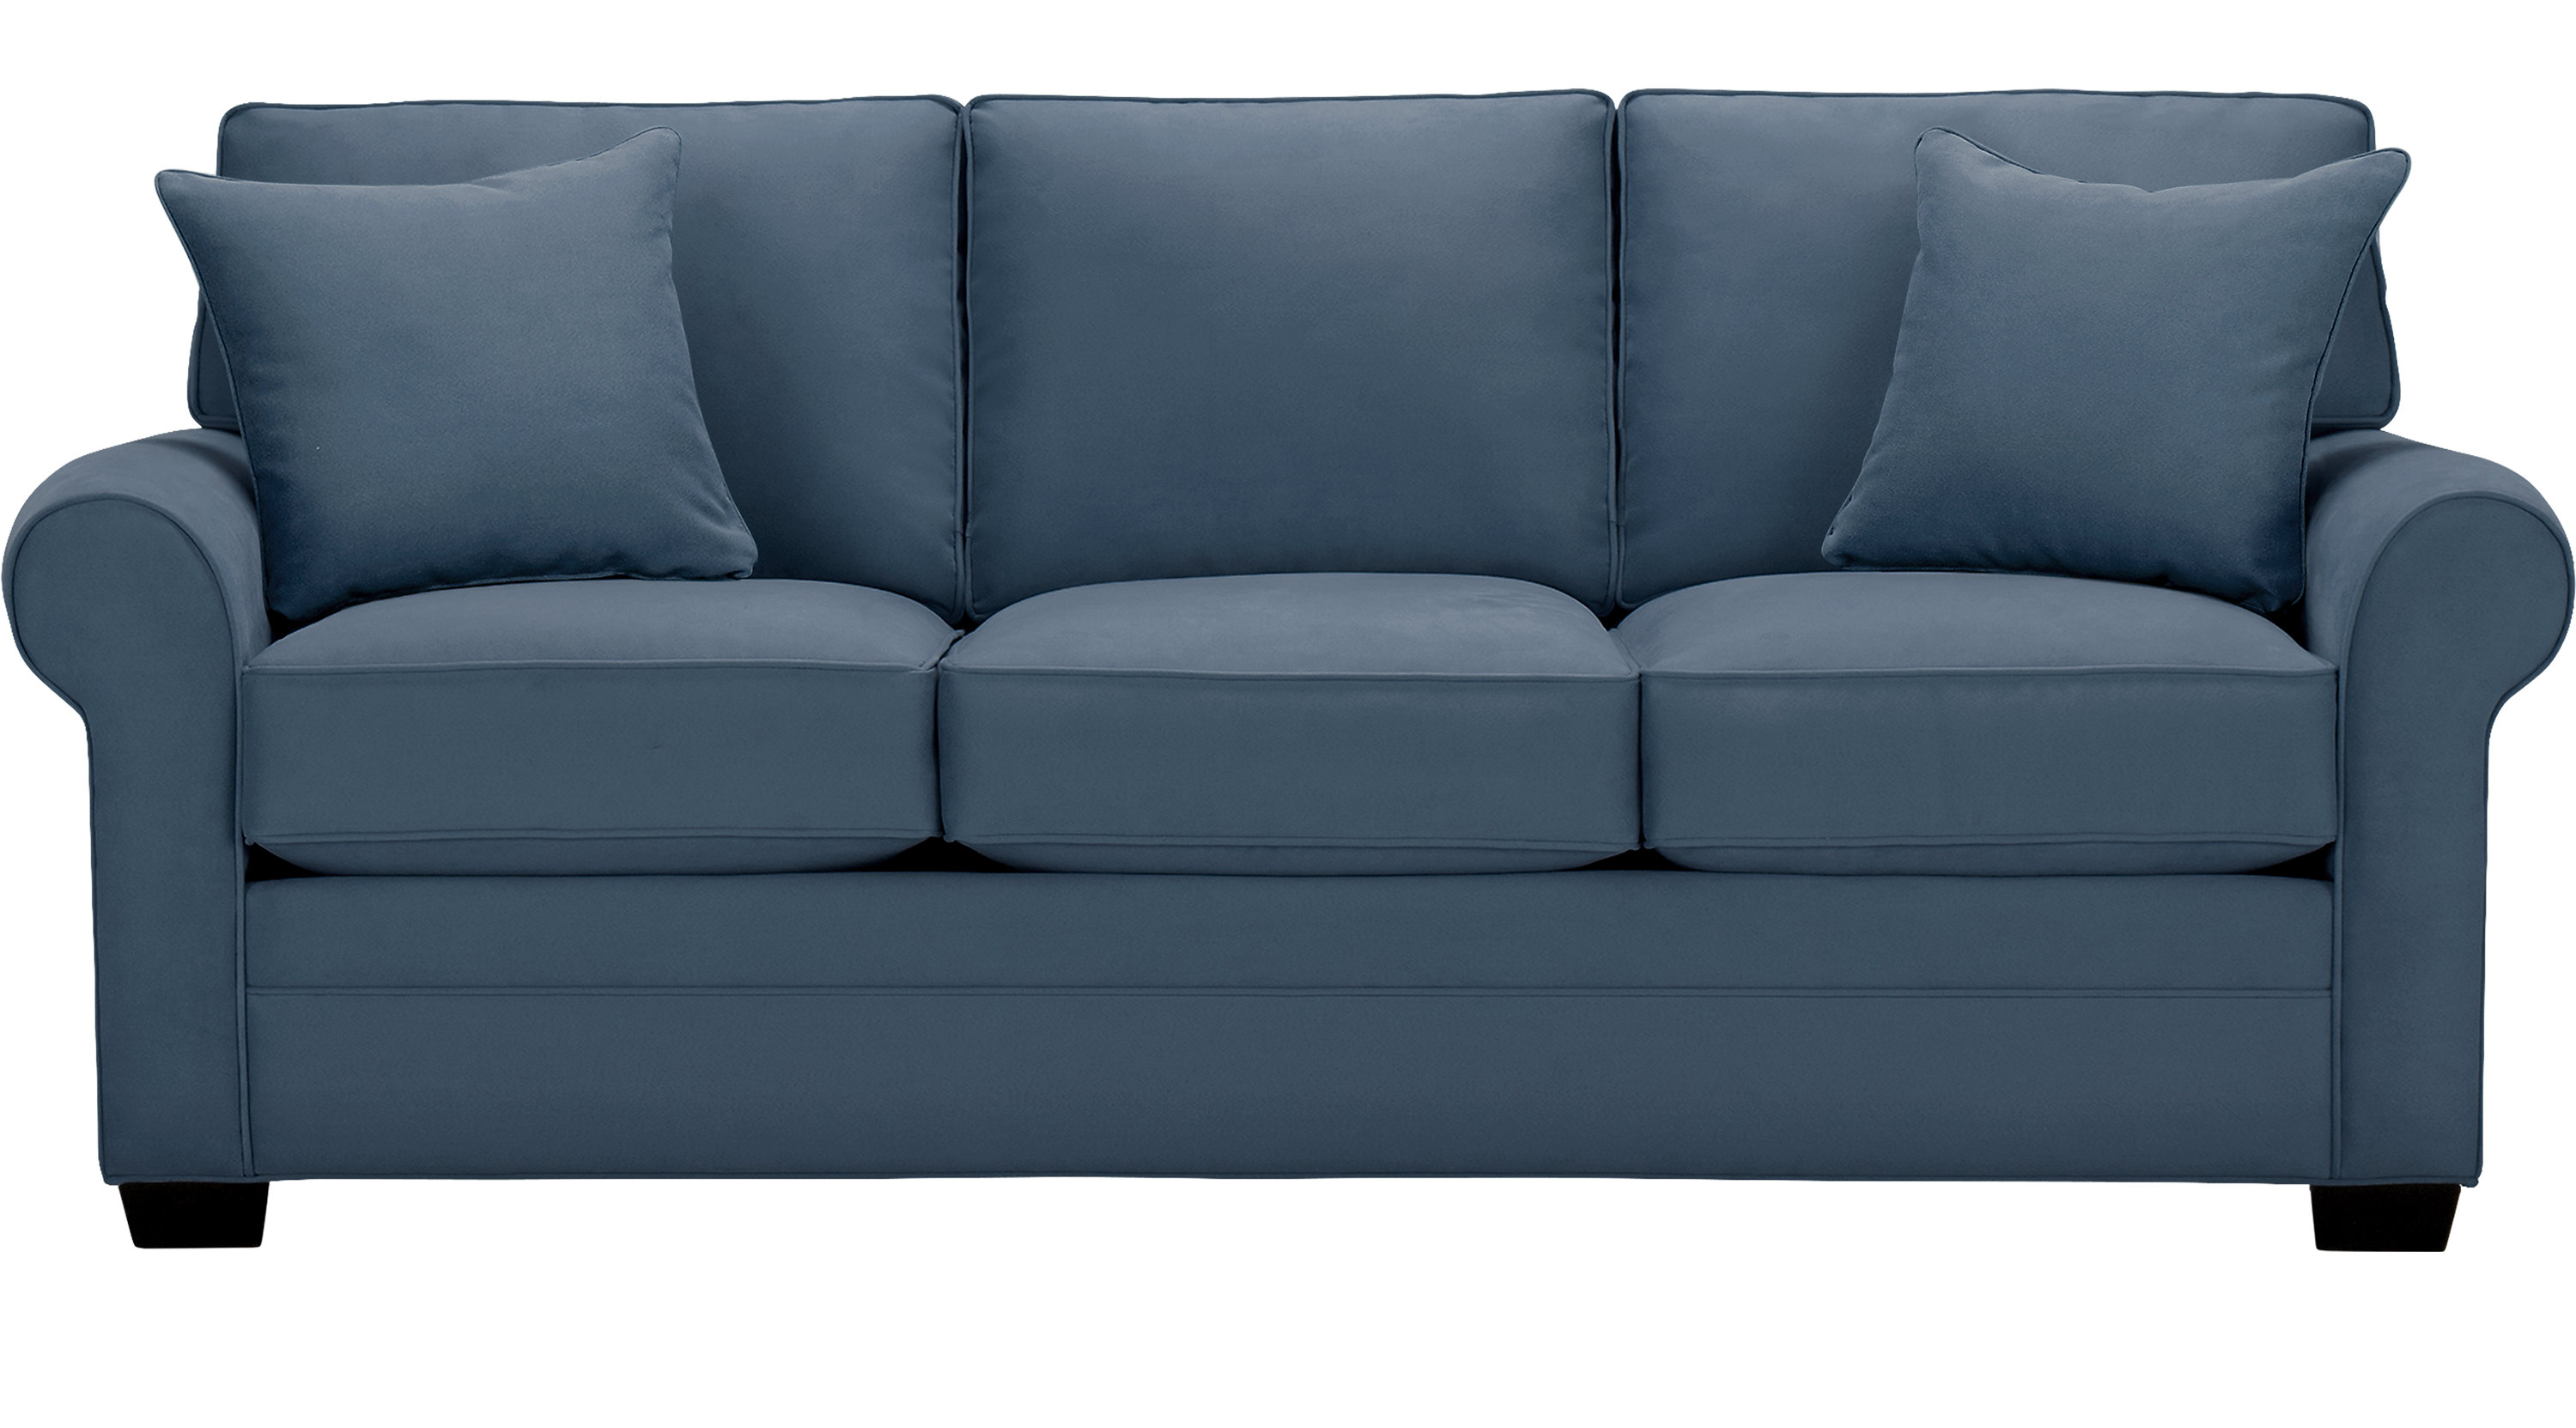 Cindy Crawford Home Bellingham Indigo Sofa